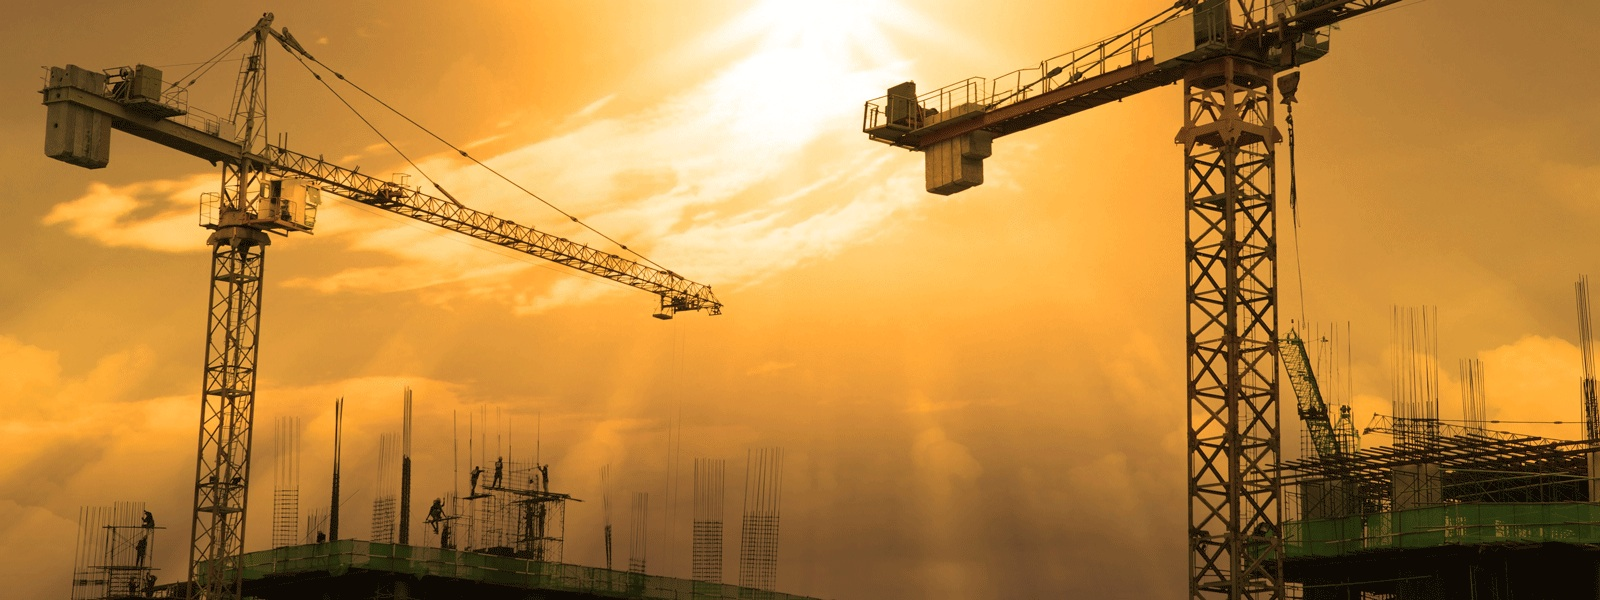 Cranes on Building site in sunset at 1600x600